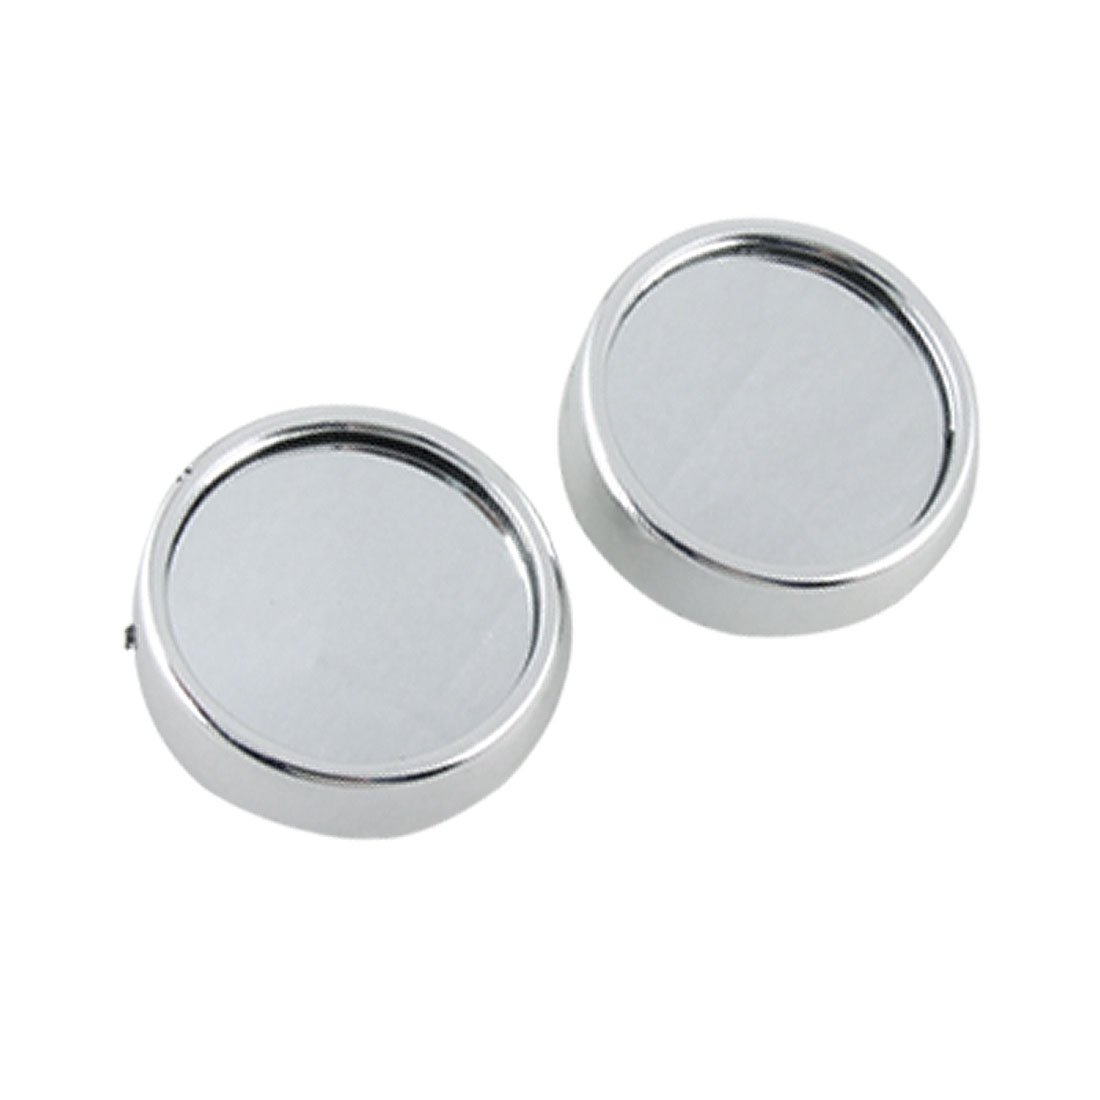 uxcell® 2pcs Silver Tone Car Side View Round Convex Rearview Blind Spot Mirrors